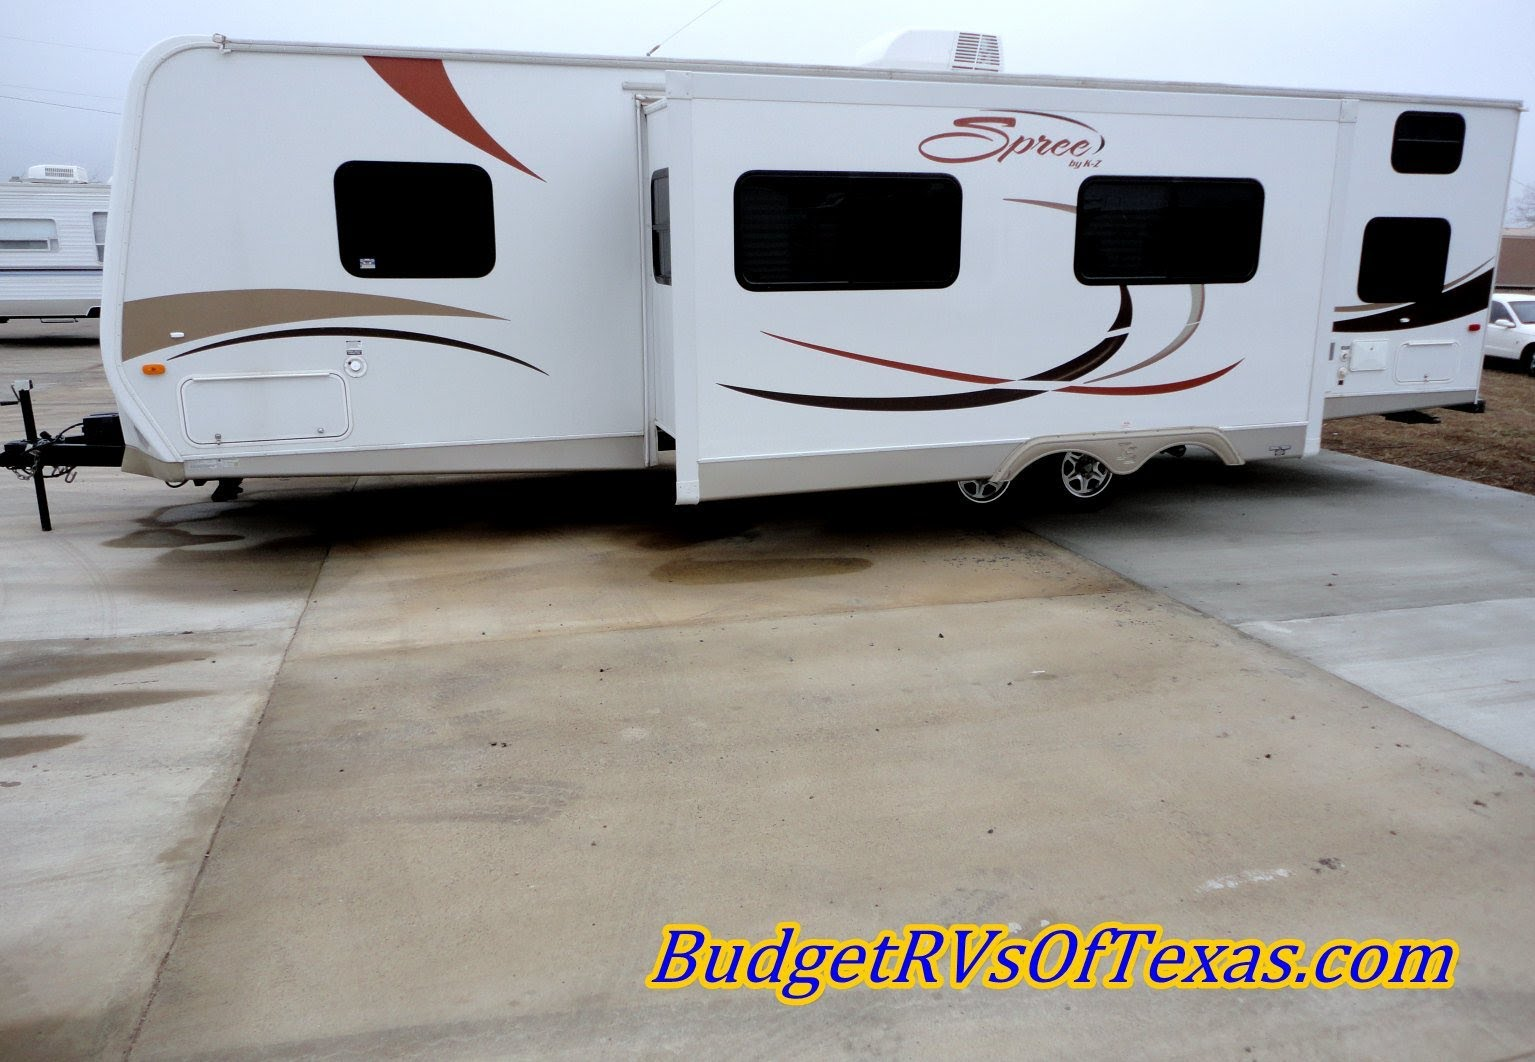 bumper pull travel trailers